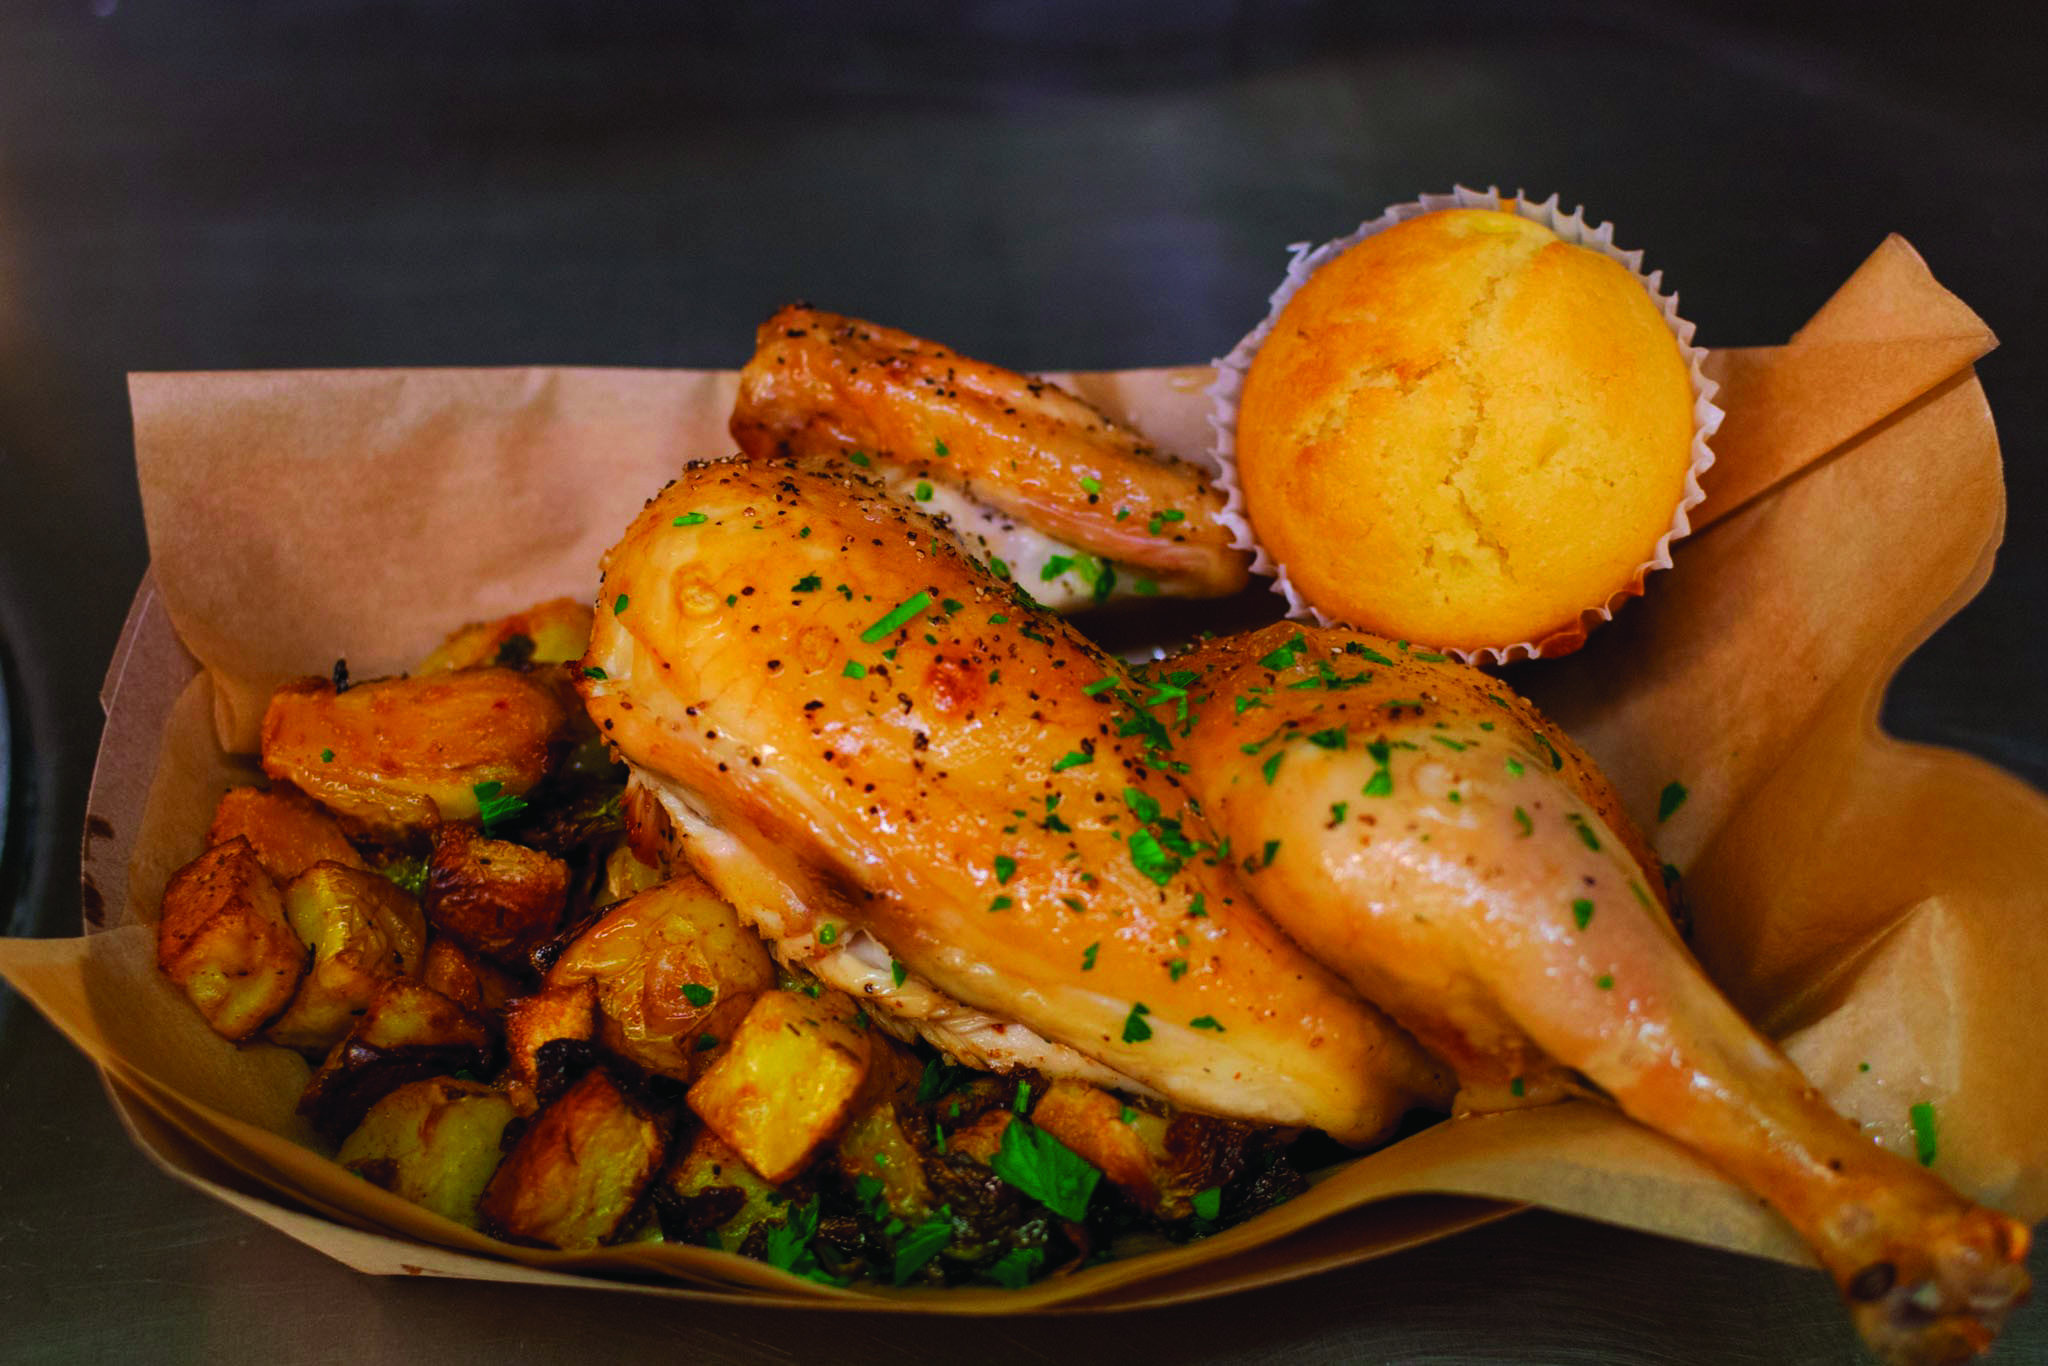 One of the many dishes served at the Culinary Arts and Hospitality program's new restaurant is a 3-piece roast chicken dish served with seasoned potatoes and corn bread. September 6, 2018 Photos by Cliff Fernandes/The Guardsman